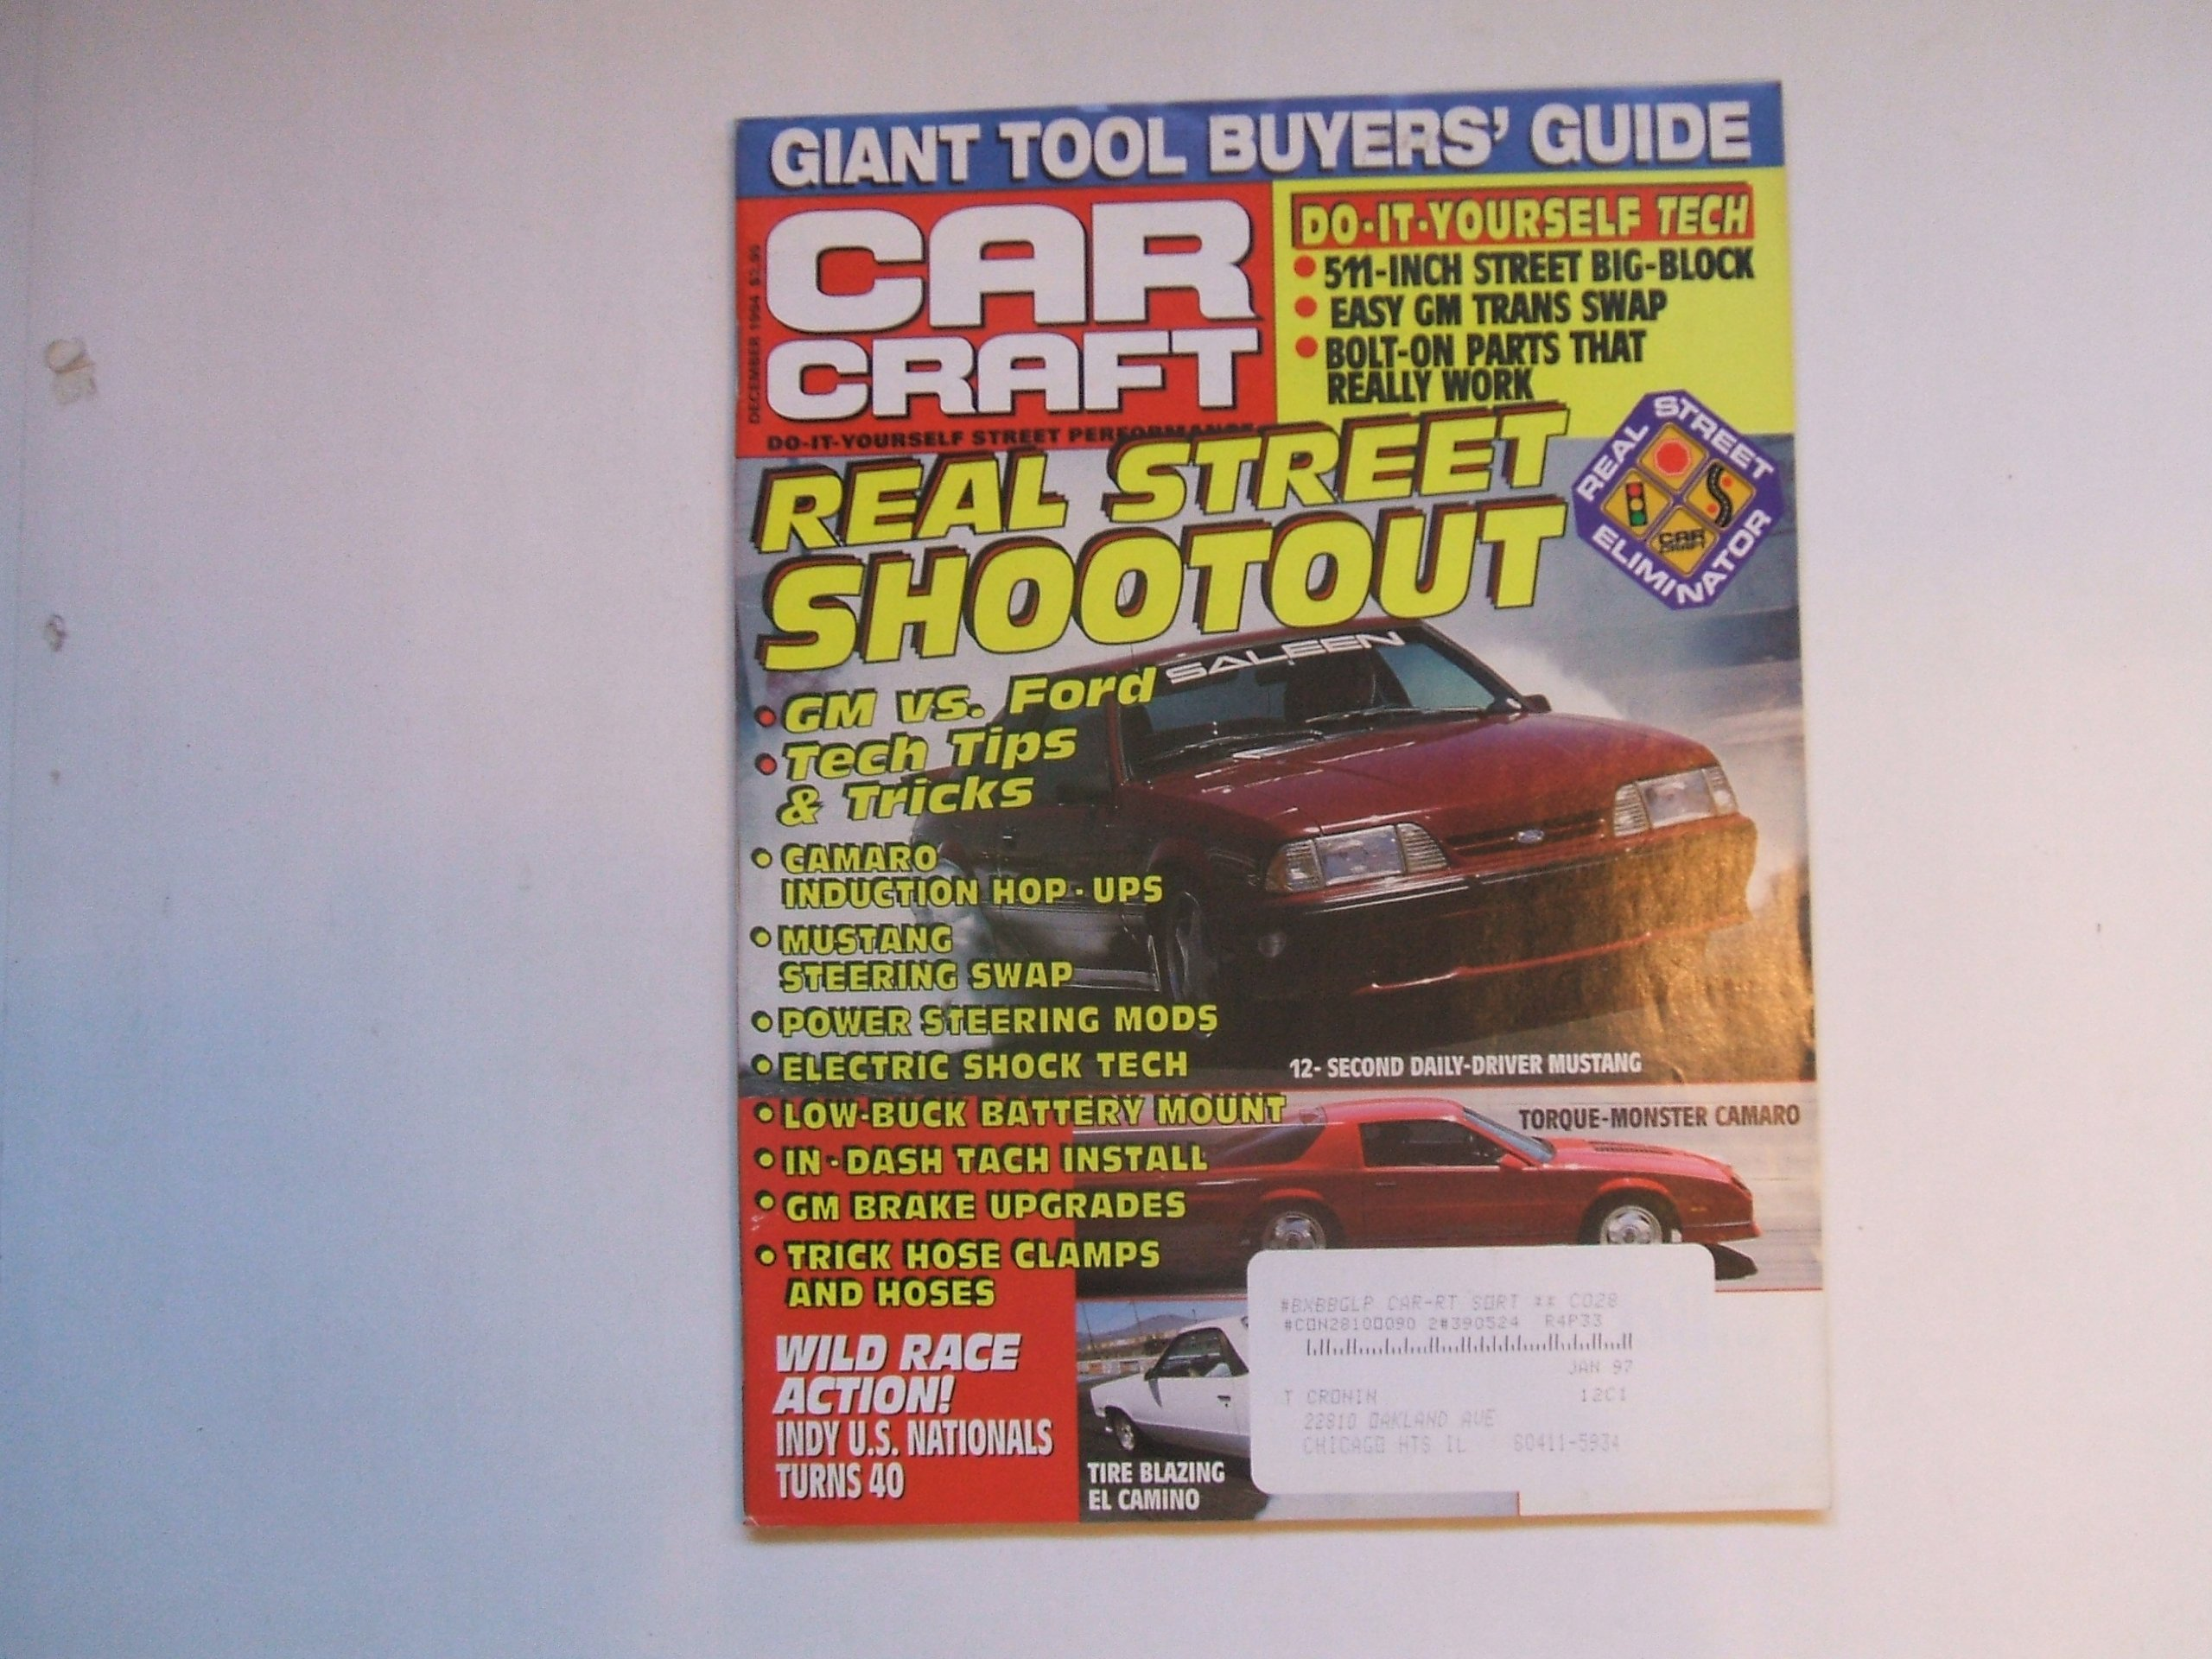 car craft december 1994 (gm vs  ford - tech tips and tricks - mustang  steering swap - in dash tach install - bolt on parts that really work,